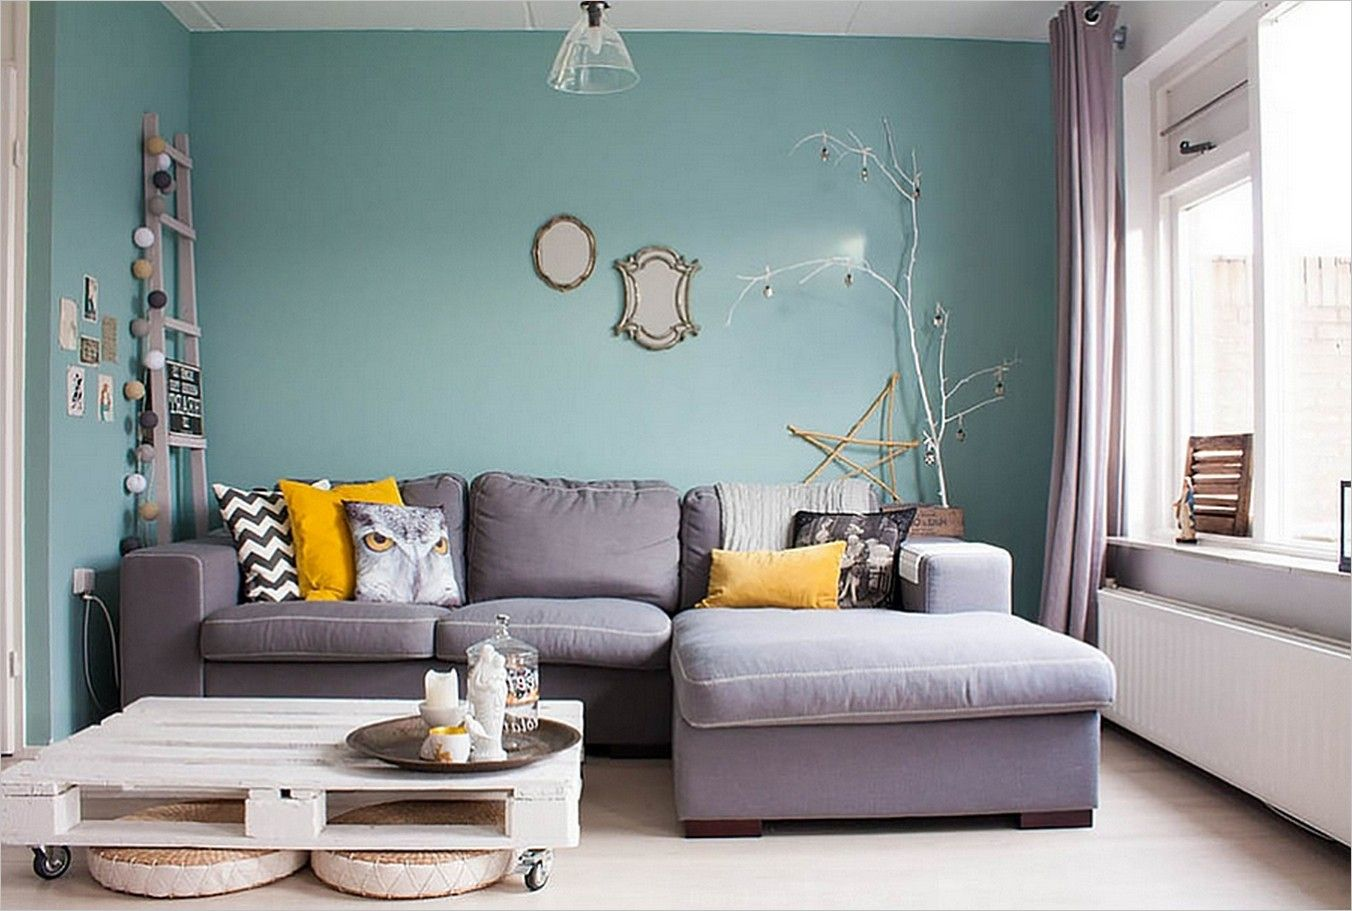 Amazing Accent Wall Colors For Small Living Room Blue Teal Paint On The Grey Fabric Beautiful